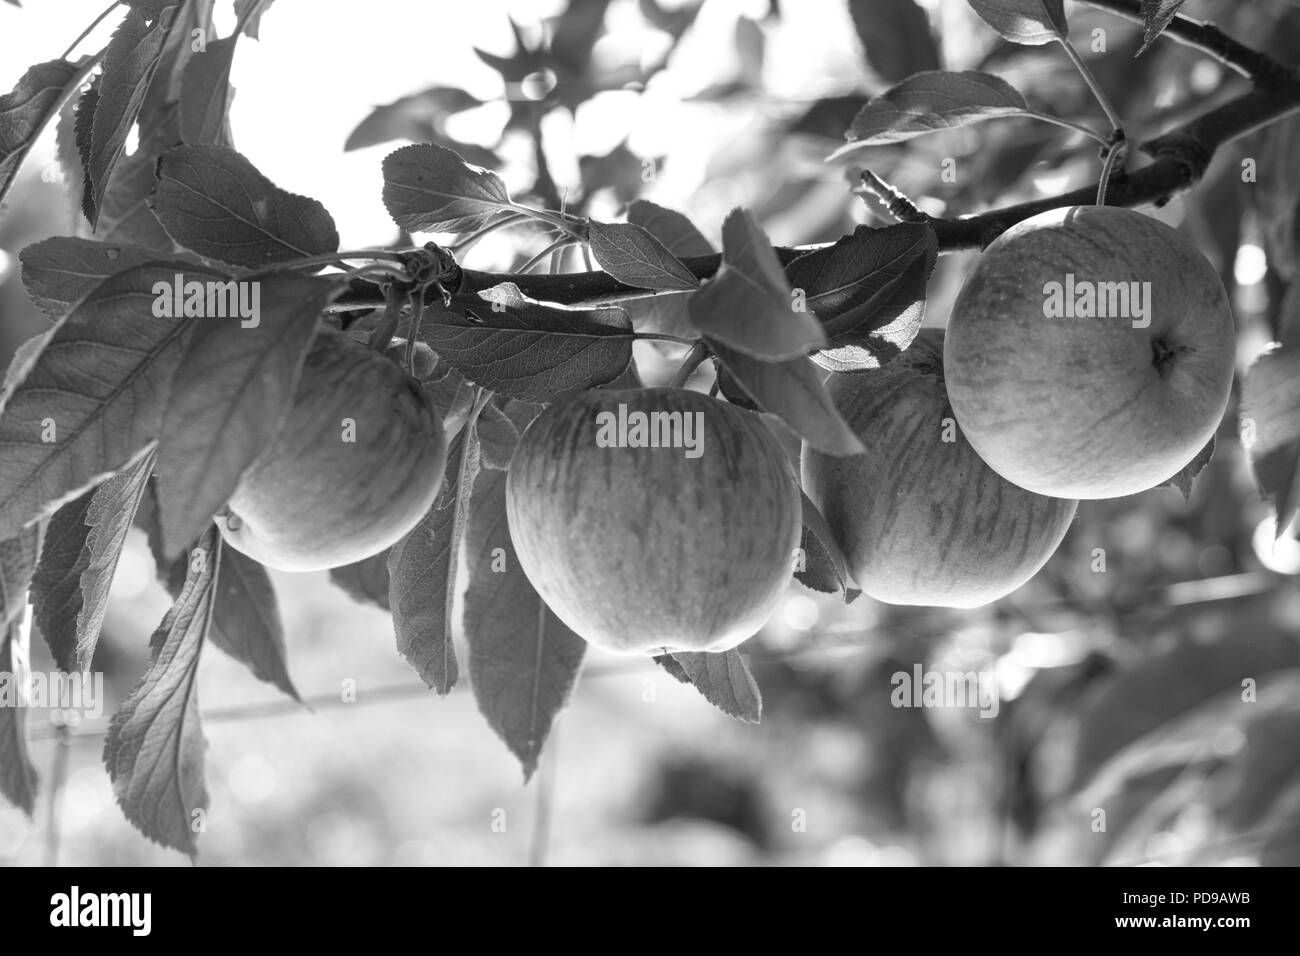 Black and white, BW, group of 4 fresh ripe natural red heirloom, organic apples close up on branches in a tree, healthy vegetarian, diet, fun, sweet s - Stock Image